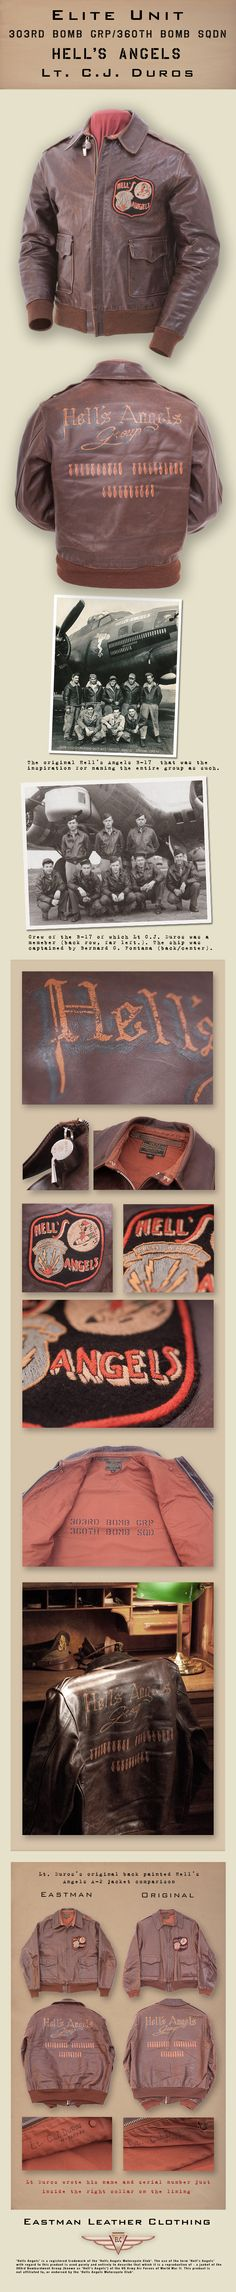 Eastman Leather Clothing - Elite Units : A-2 Hells An